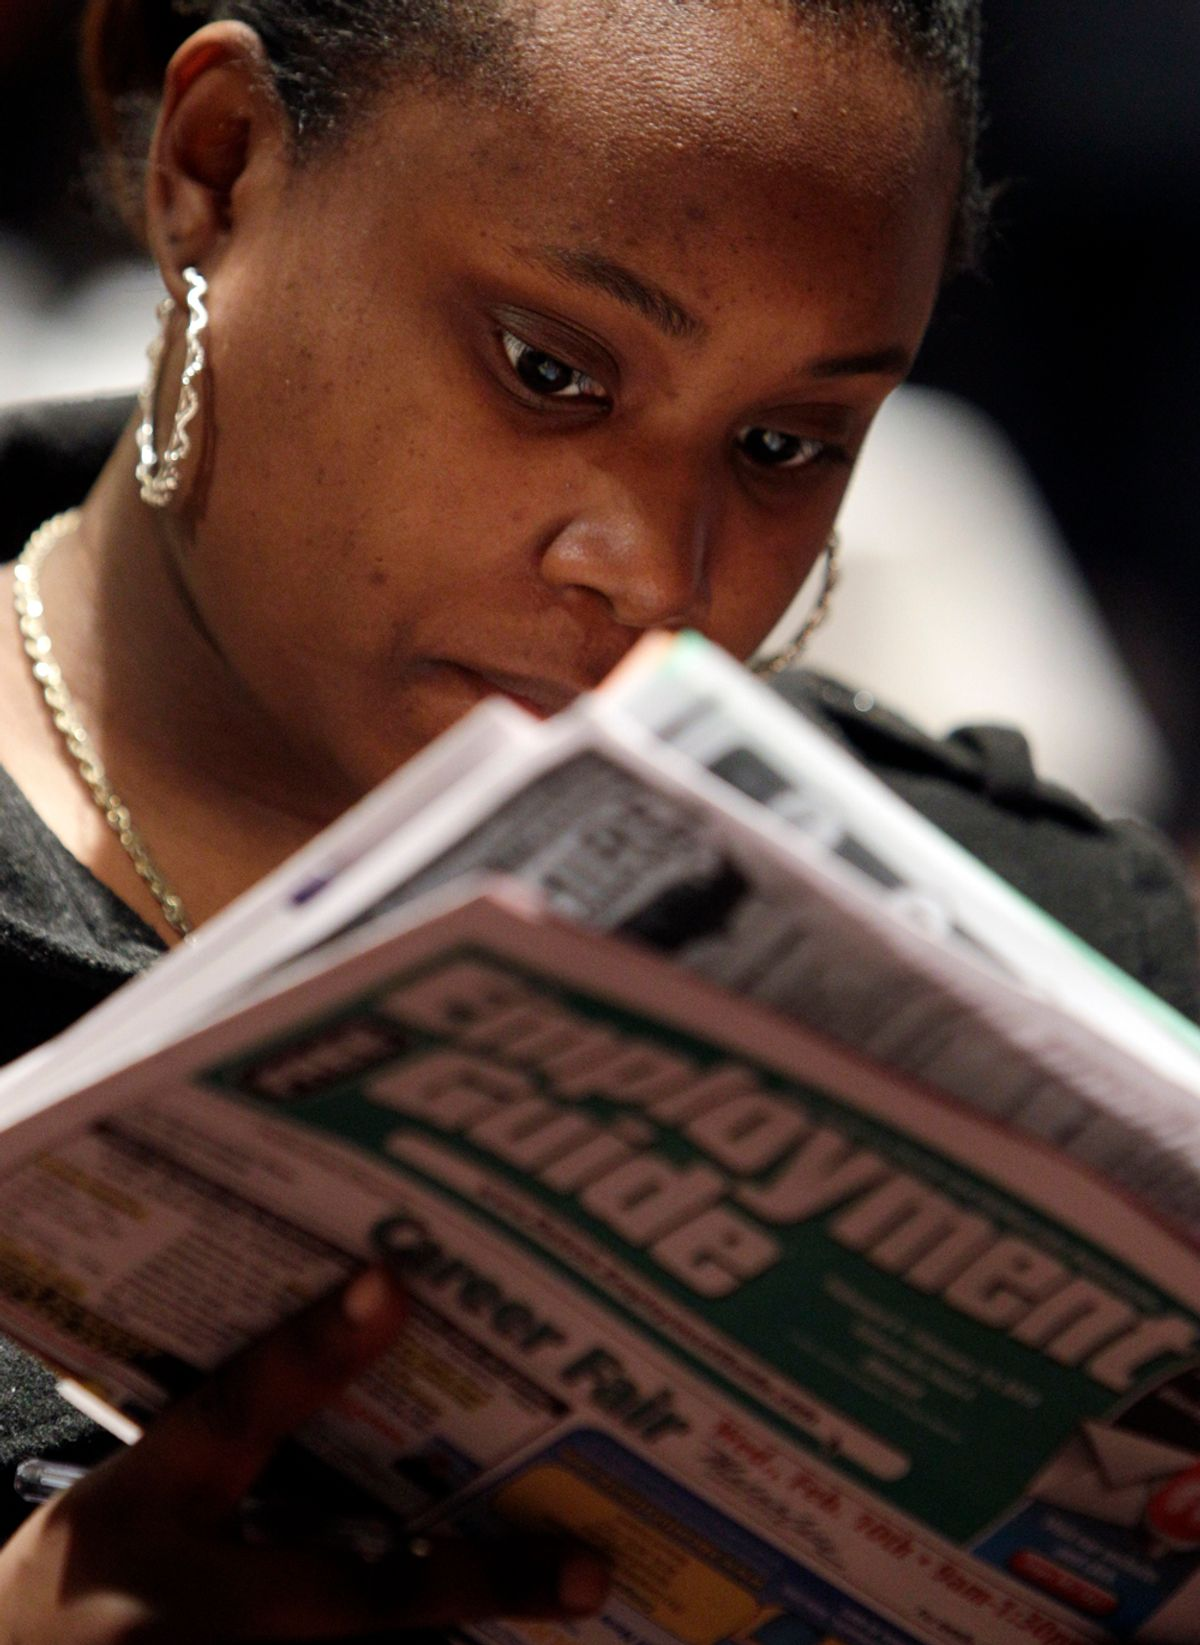 Santilya Bailey, of Detroit, looks for employment while attending a job fair in Detroit Wednesday, Feb. 10, 2010. The number of newly laid-off workers seeking unemployment benefits fell sharply last week, a hopeful sign the job market may be improving.(AP Photo/Paul Sancya)   (Paul Sancya)